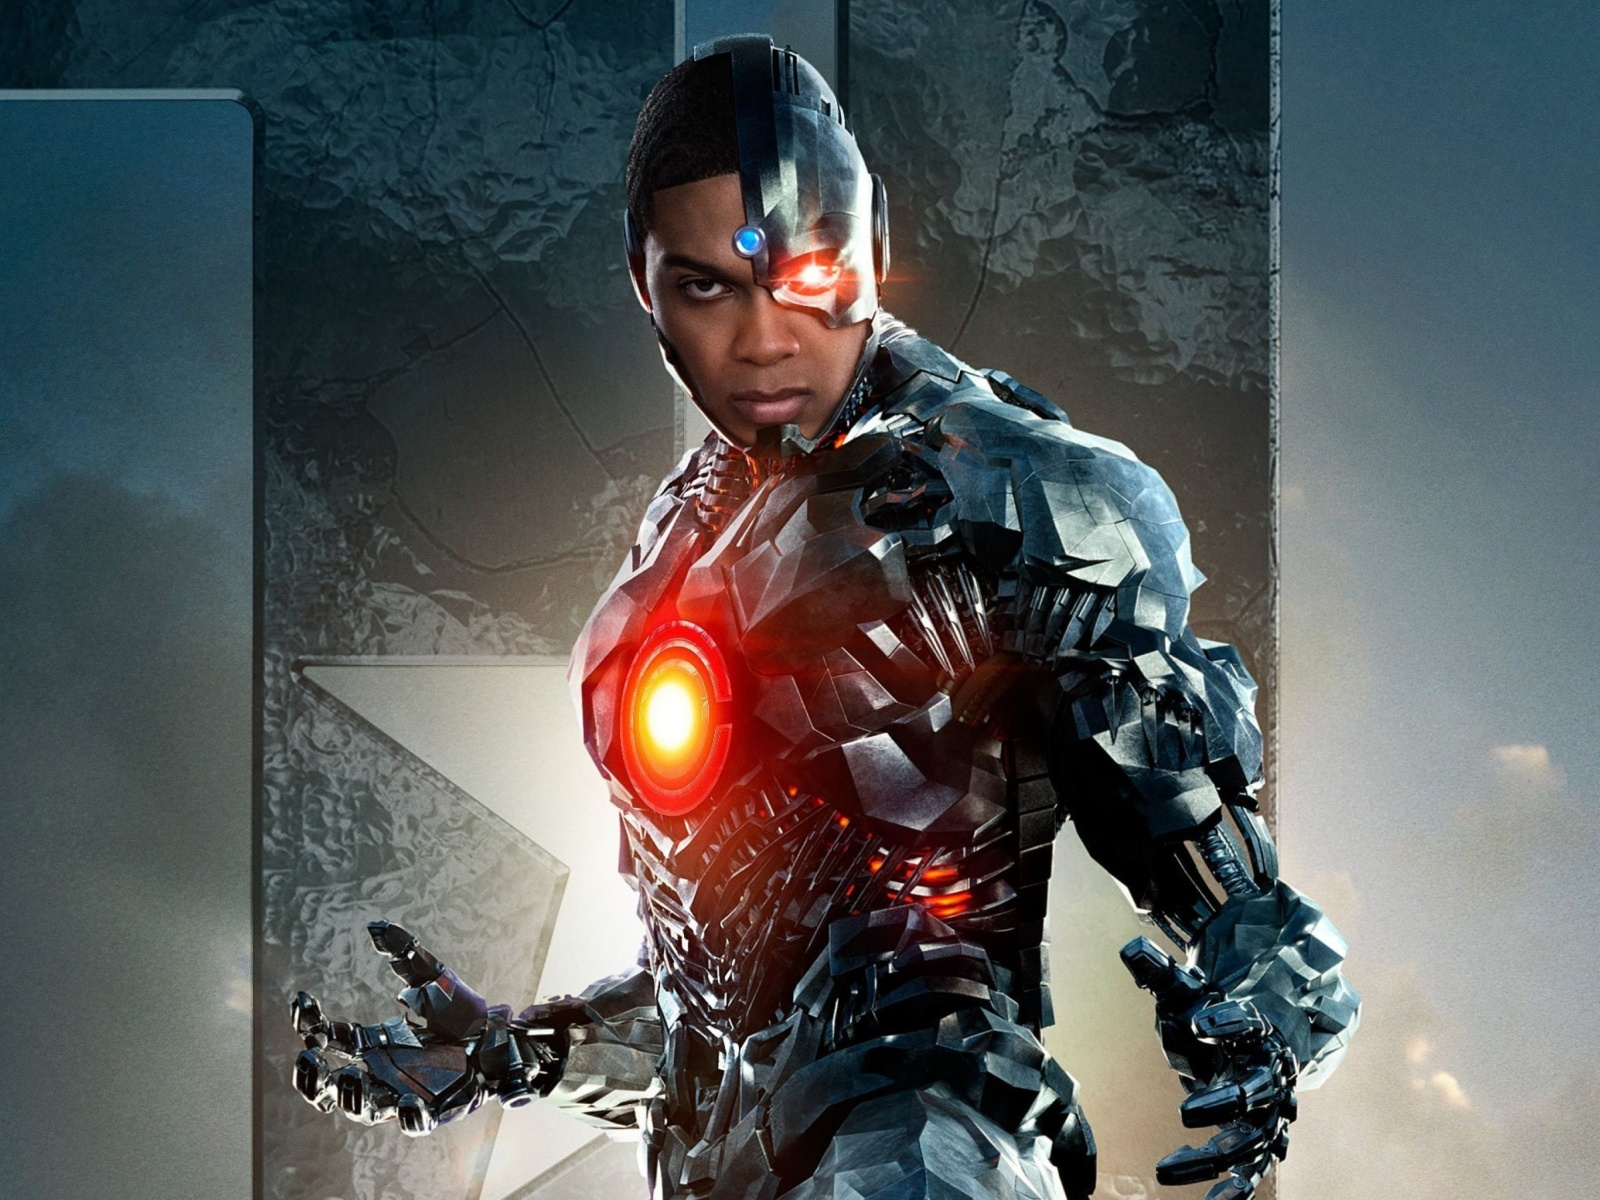 Das Cyborg Justice League Wallpaper 1600x1200